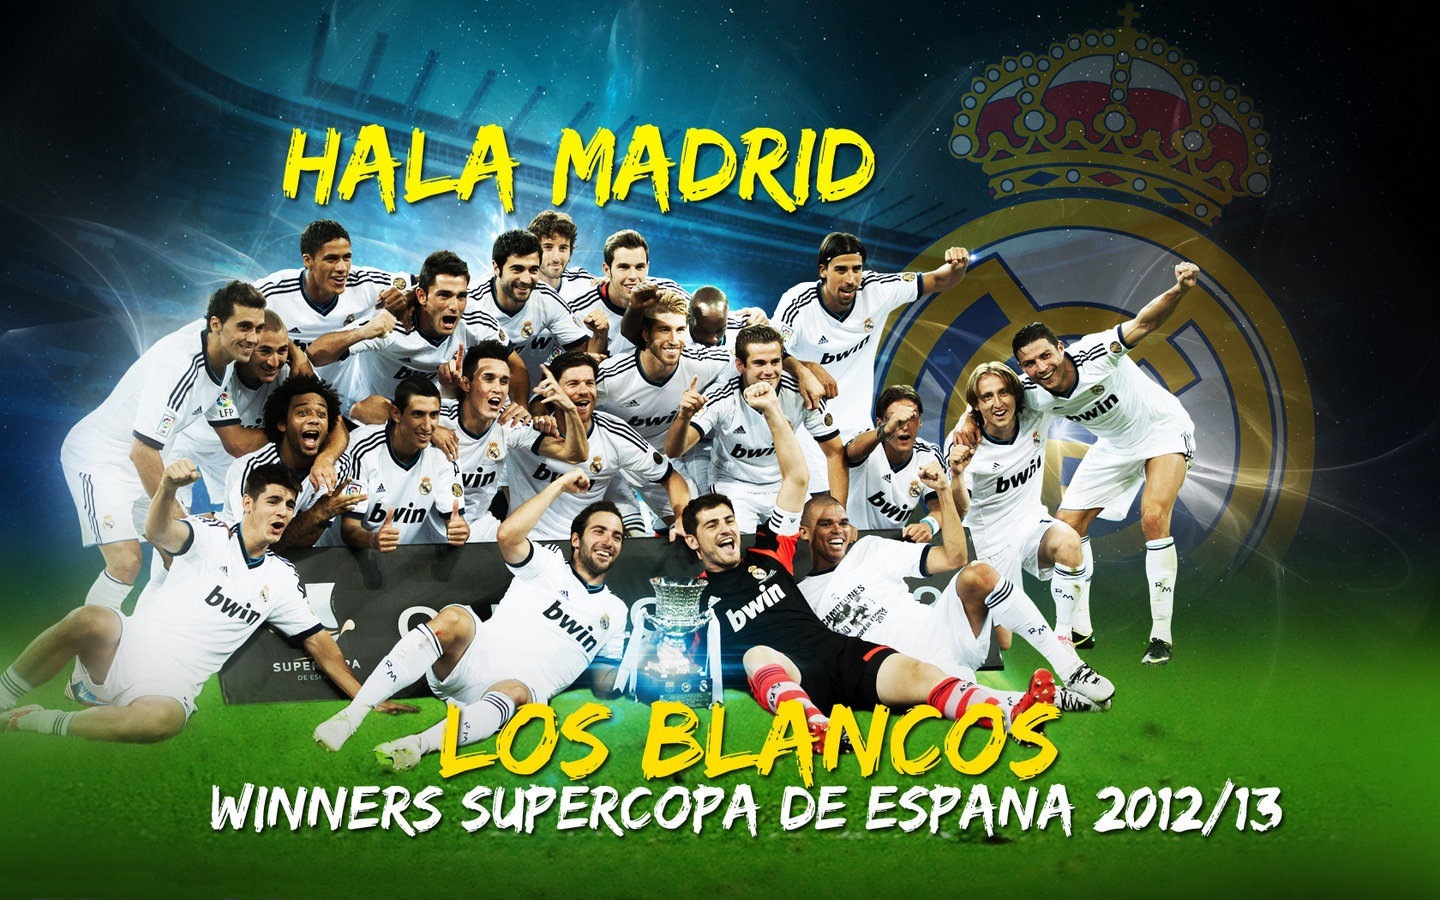 Wallpaper  Real Madrid Super Cup Winners 2012 13